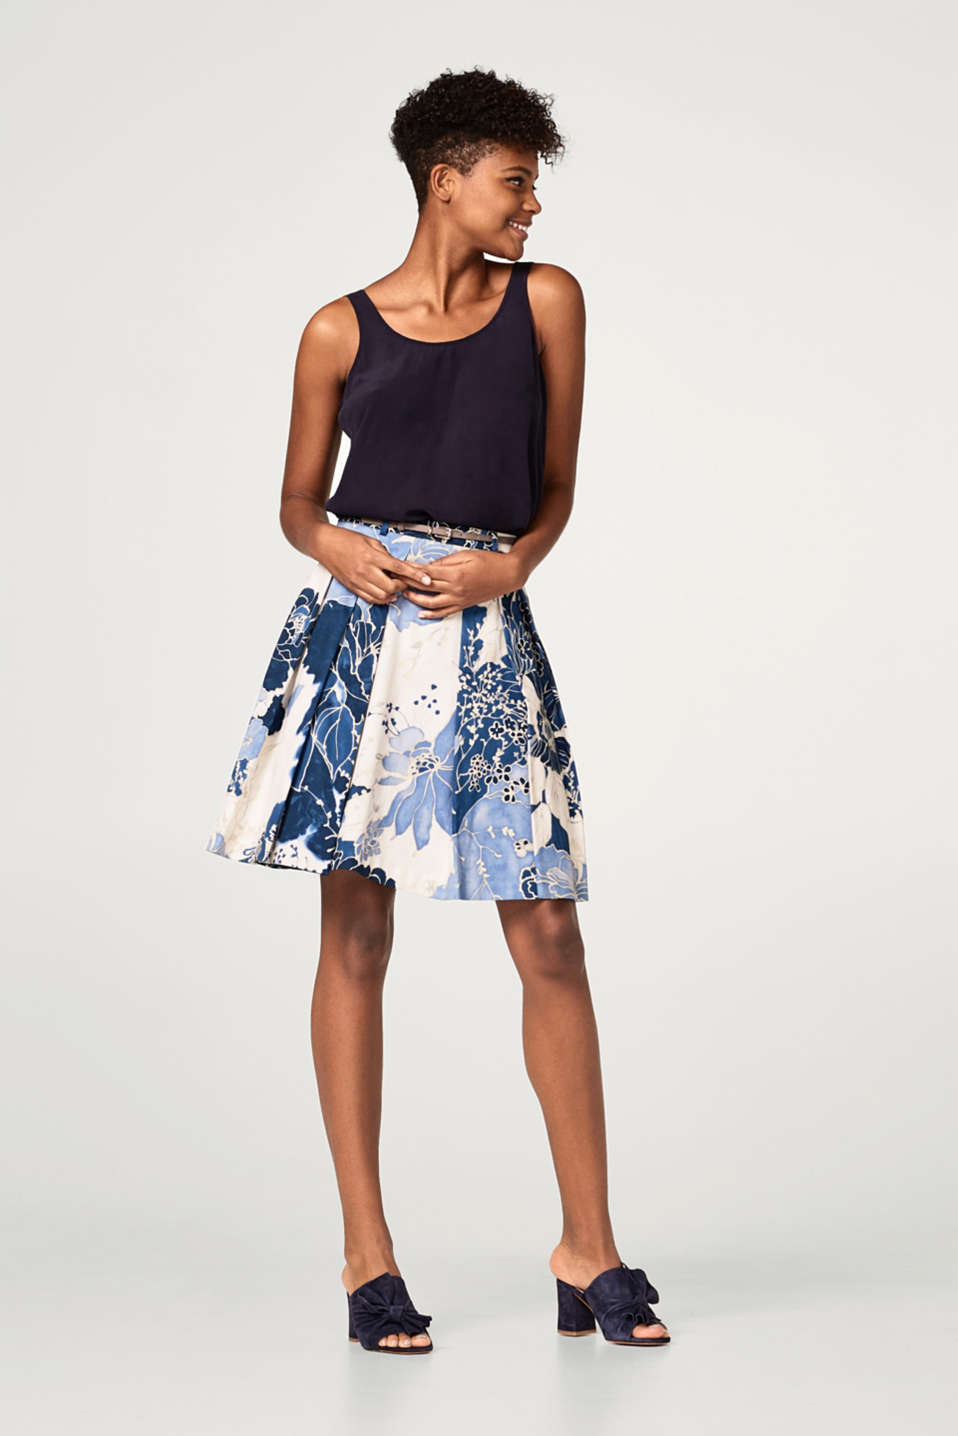 Satin pleated skirt with a floral print and belt